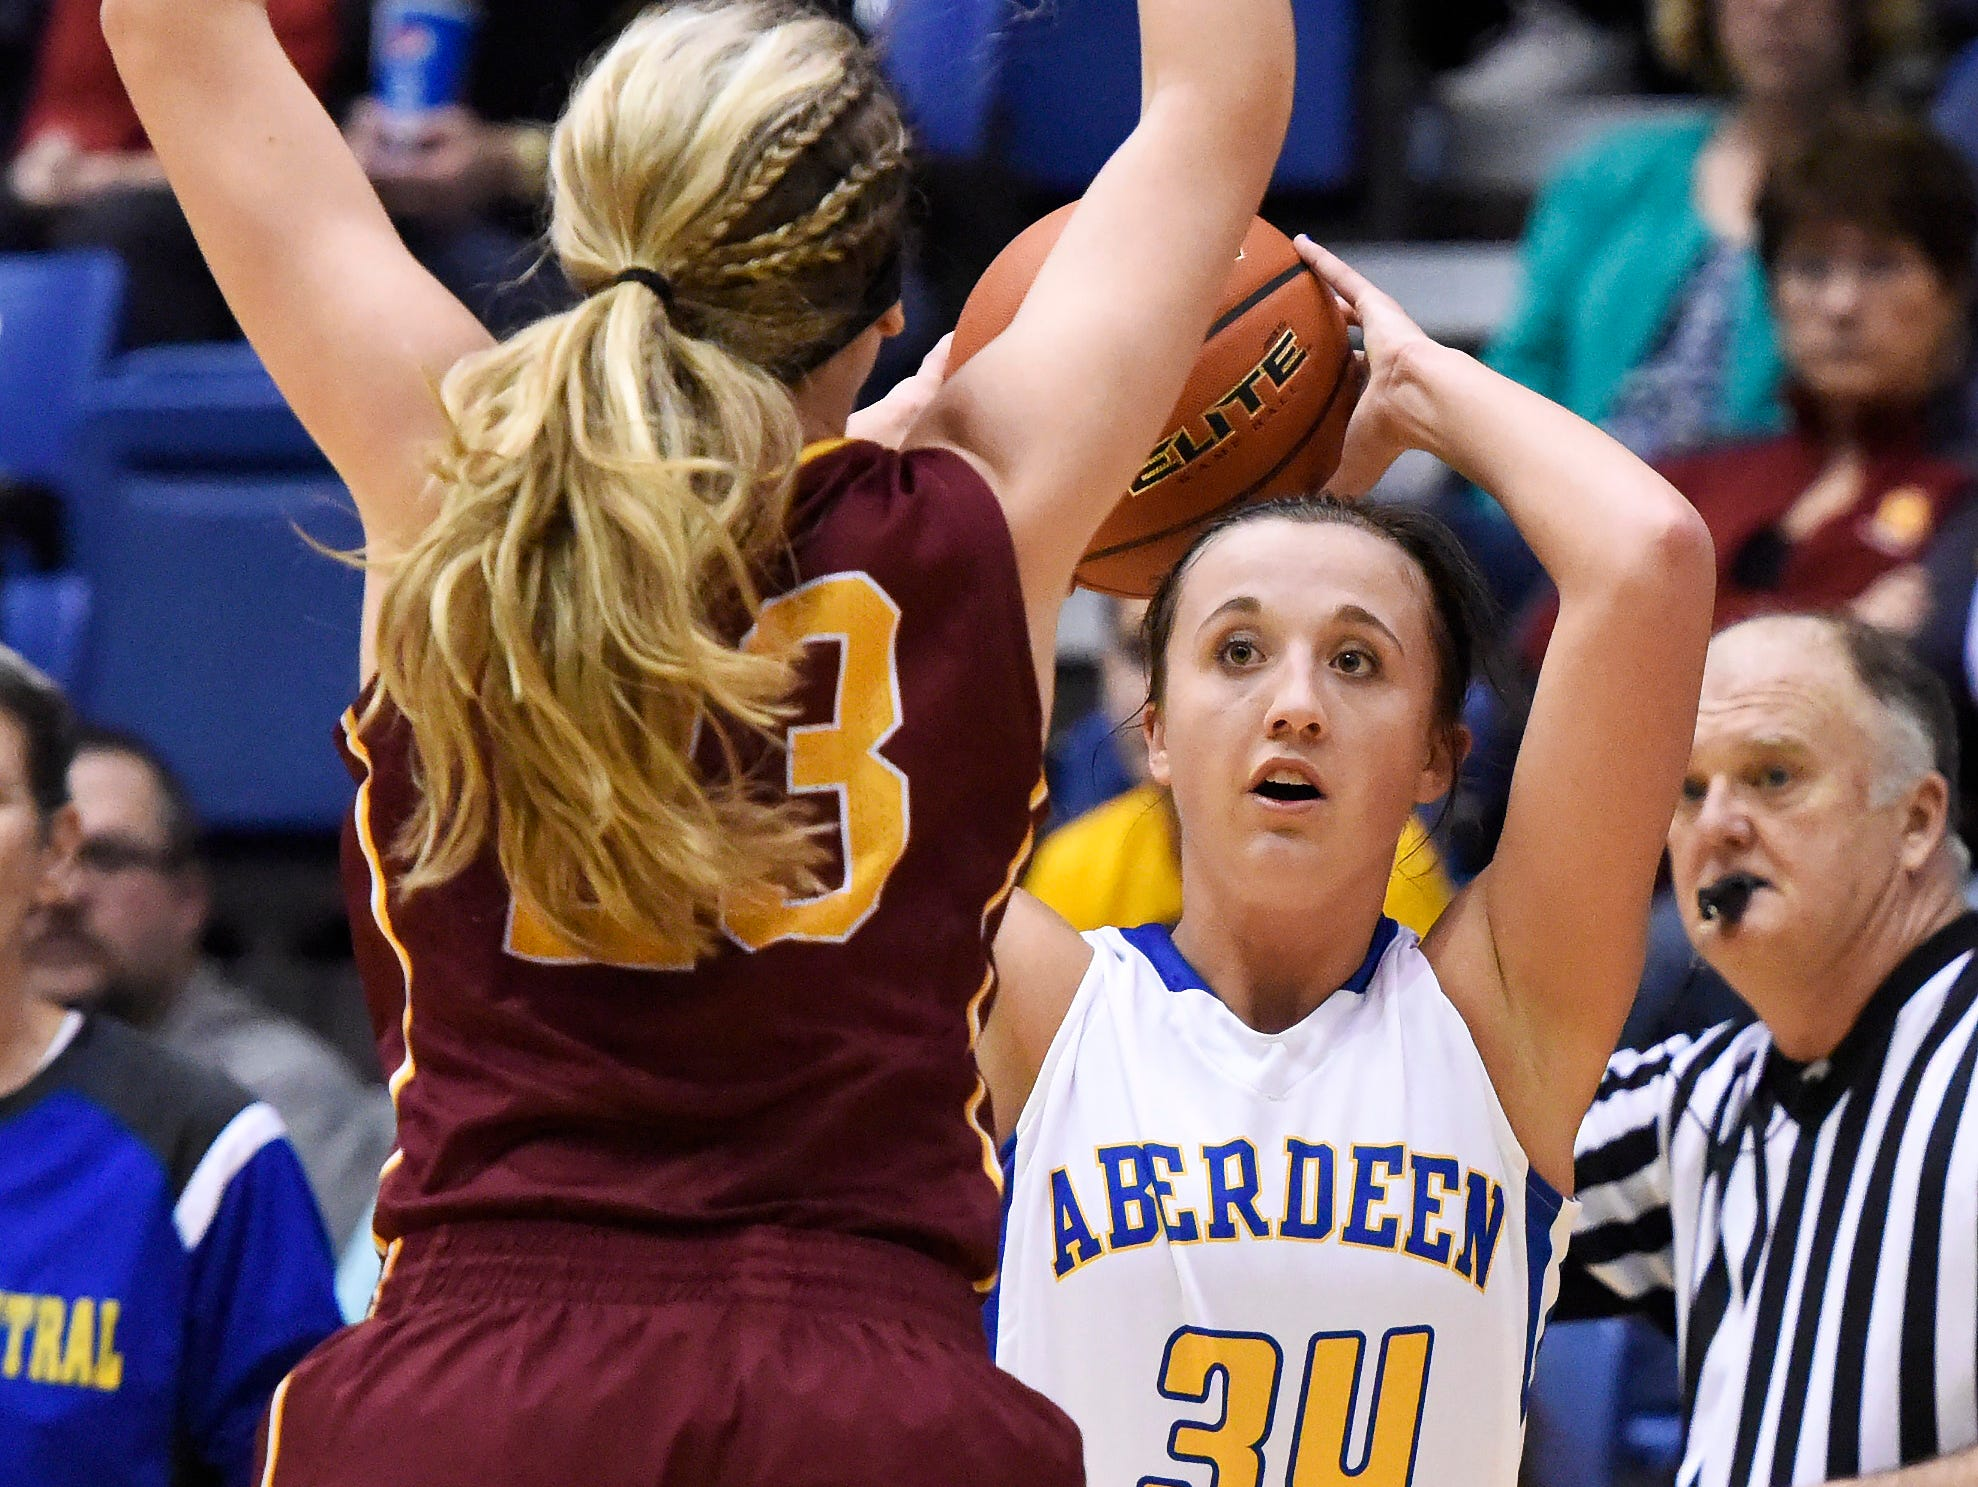 Aberdeen Central's Brianna Kusler (34) tries to get the ball past Roosevelt's Tahia Mitzel (23) in a state girls class AA basketball quarterfinal Thursday at the Sioux Falls Arena, March 17, 2016. Aberdeen Central beat Roosevelt 64-55.